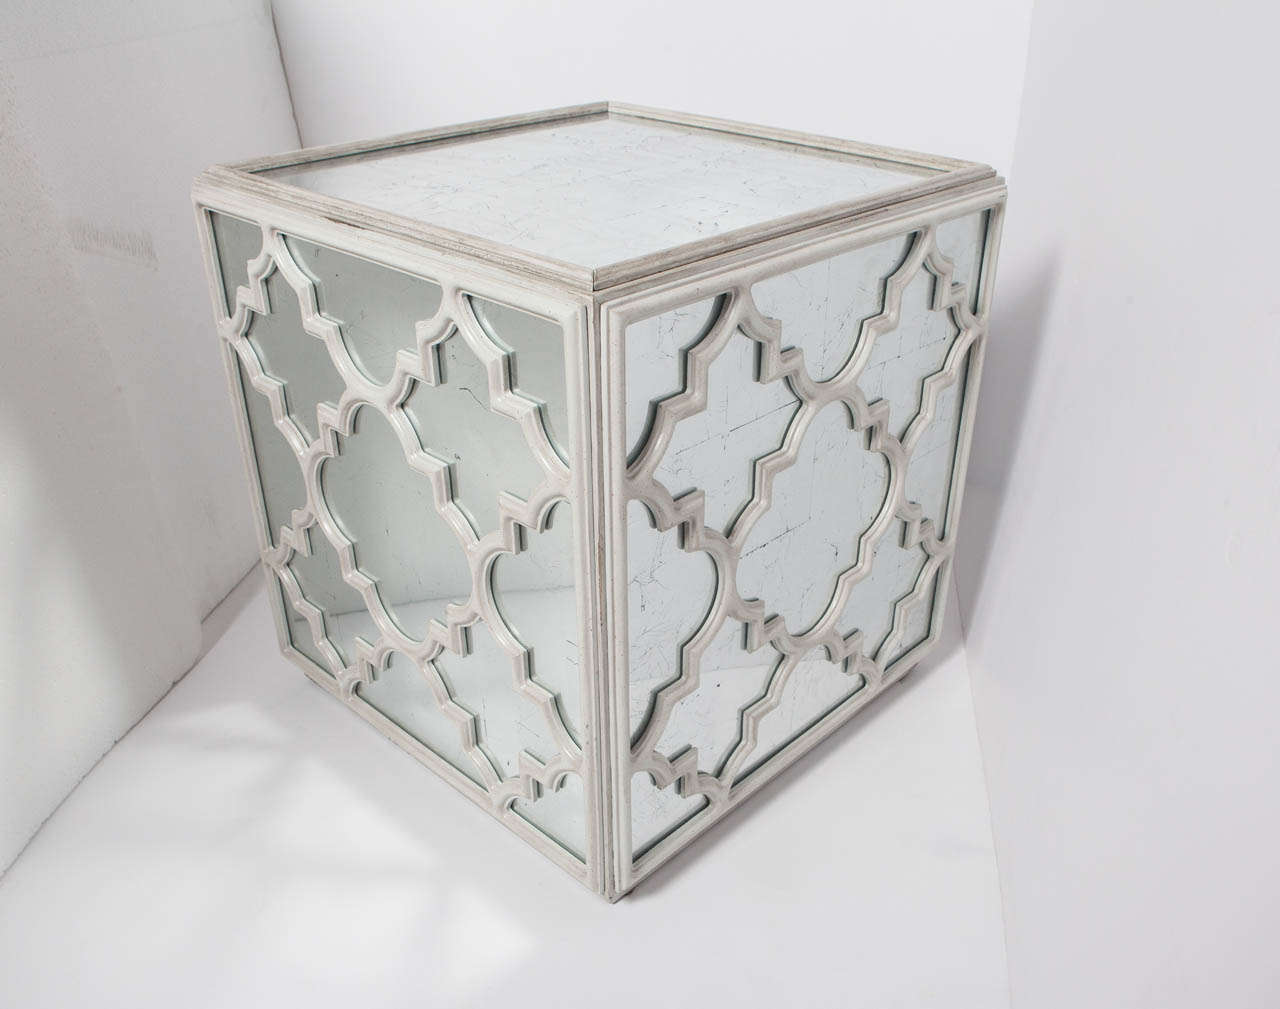 Mirrored Cube Coffee Or End Table For Sale At 1stdibs